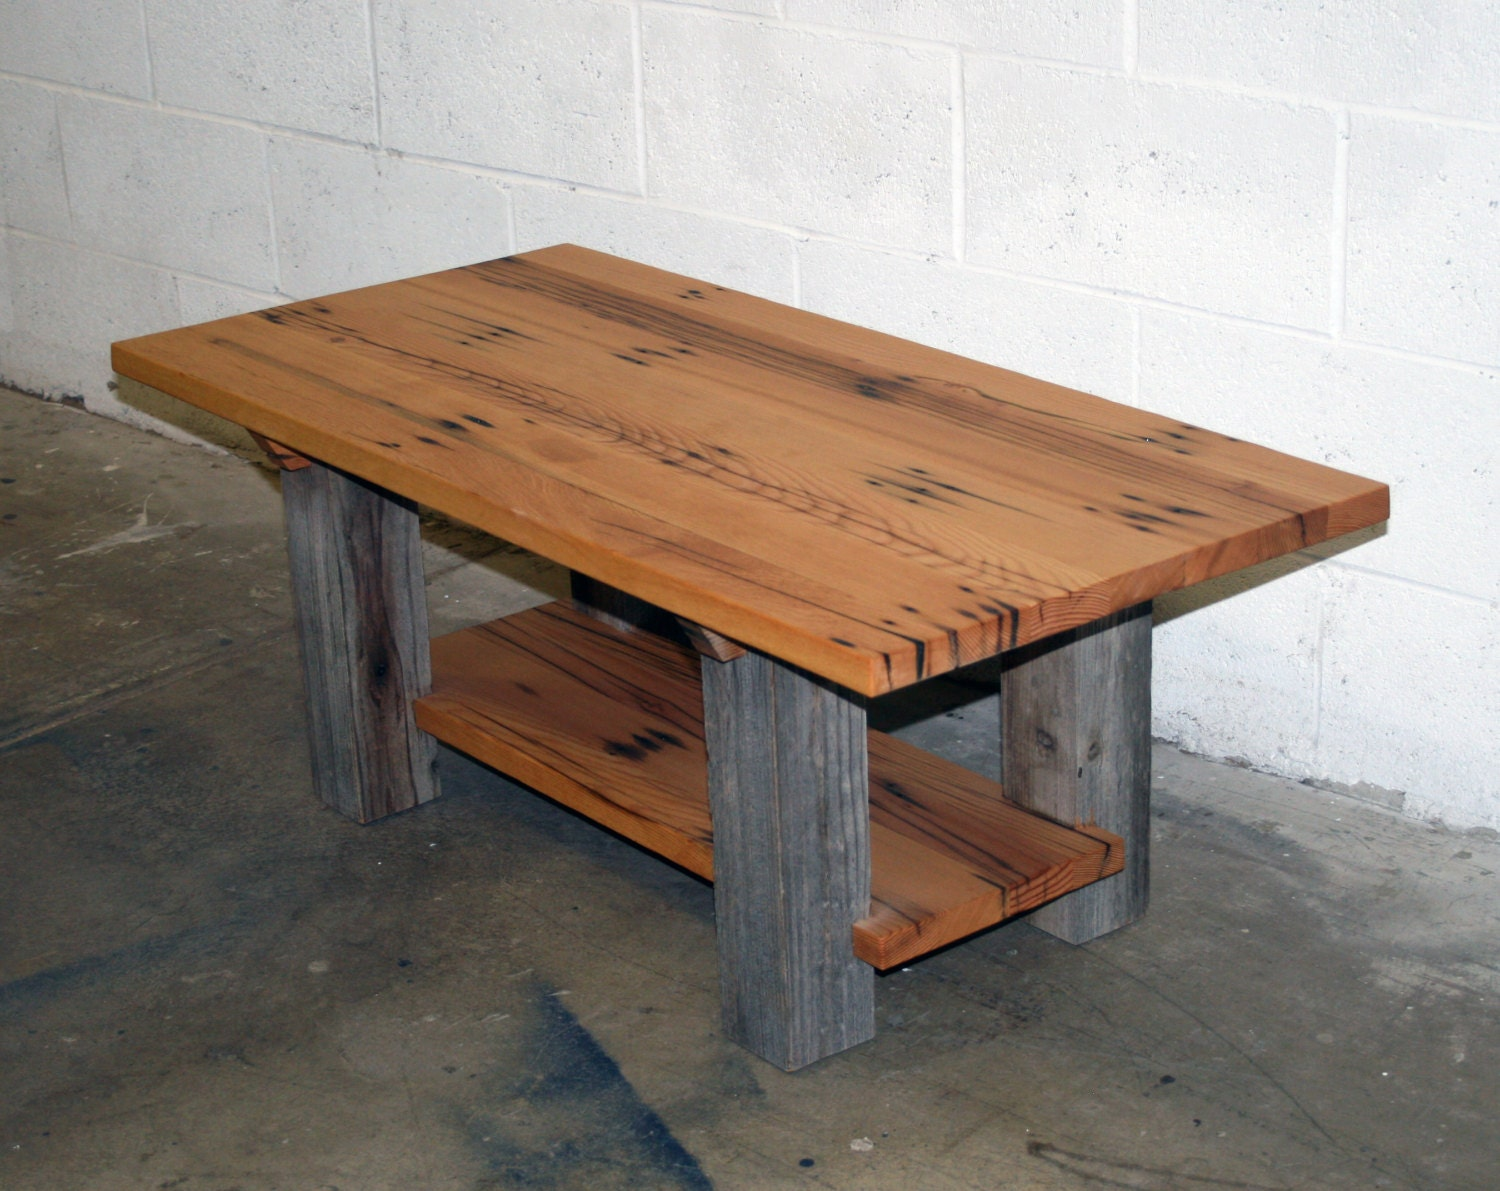 Reclaimed Fir And Barn Wood Coffee Table 42 By Lunarcanyon